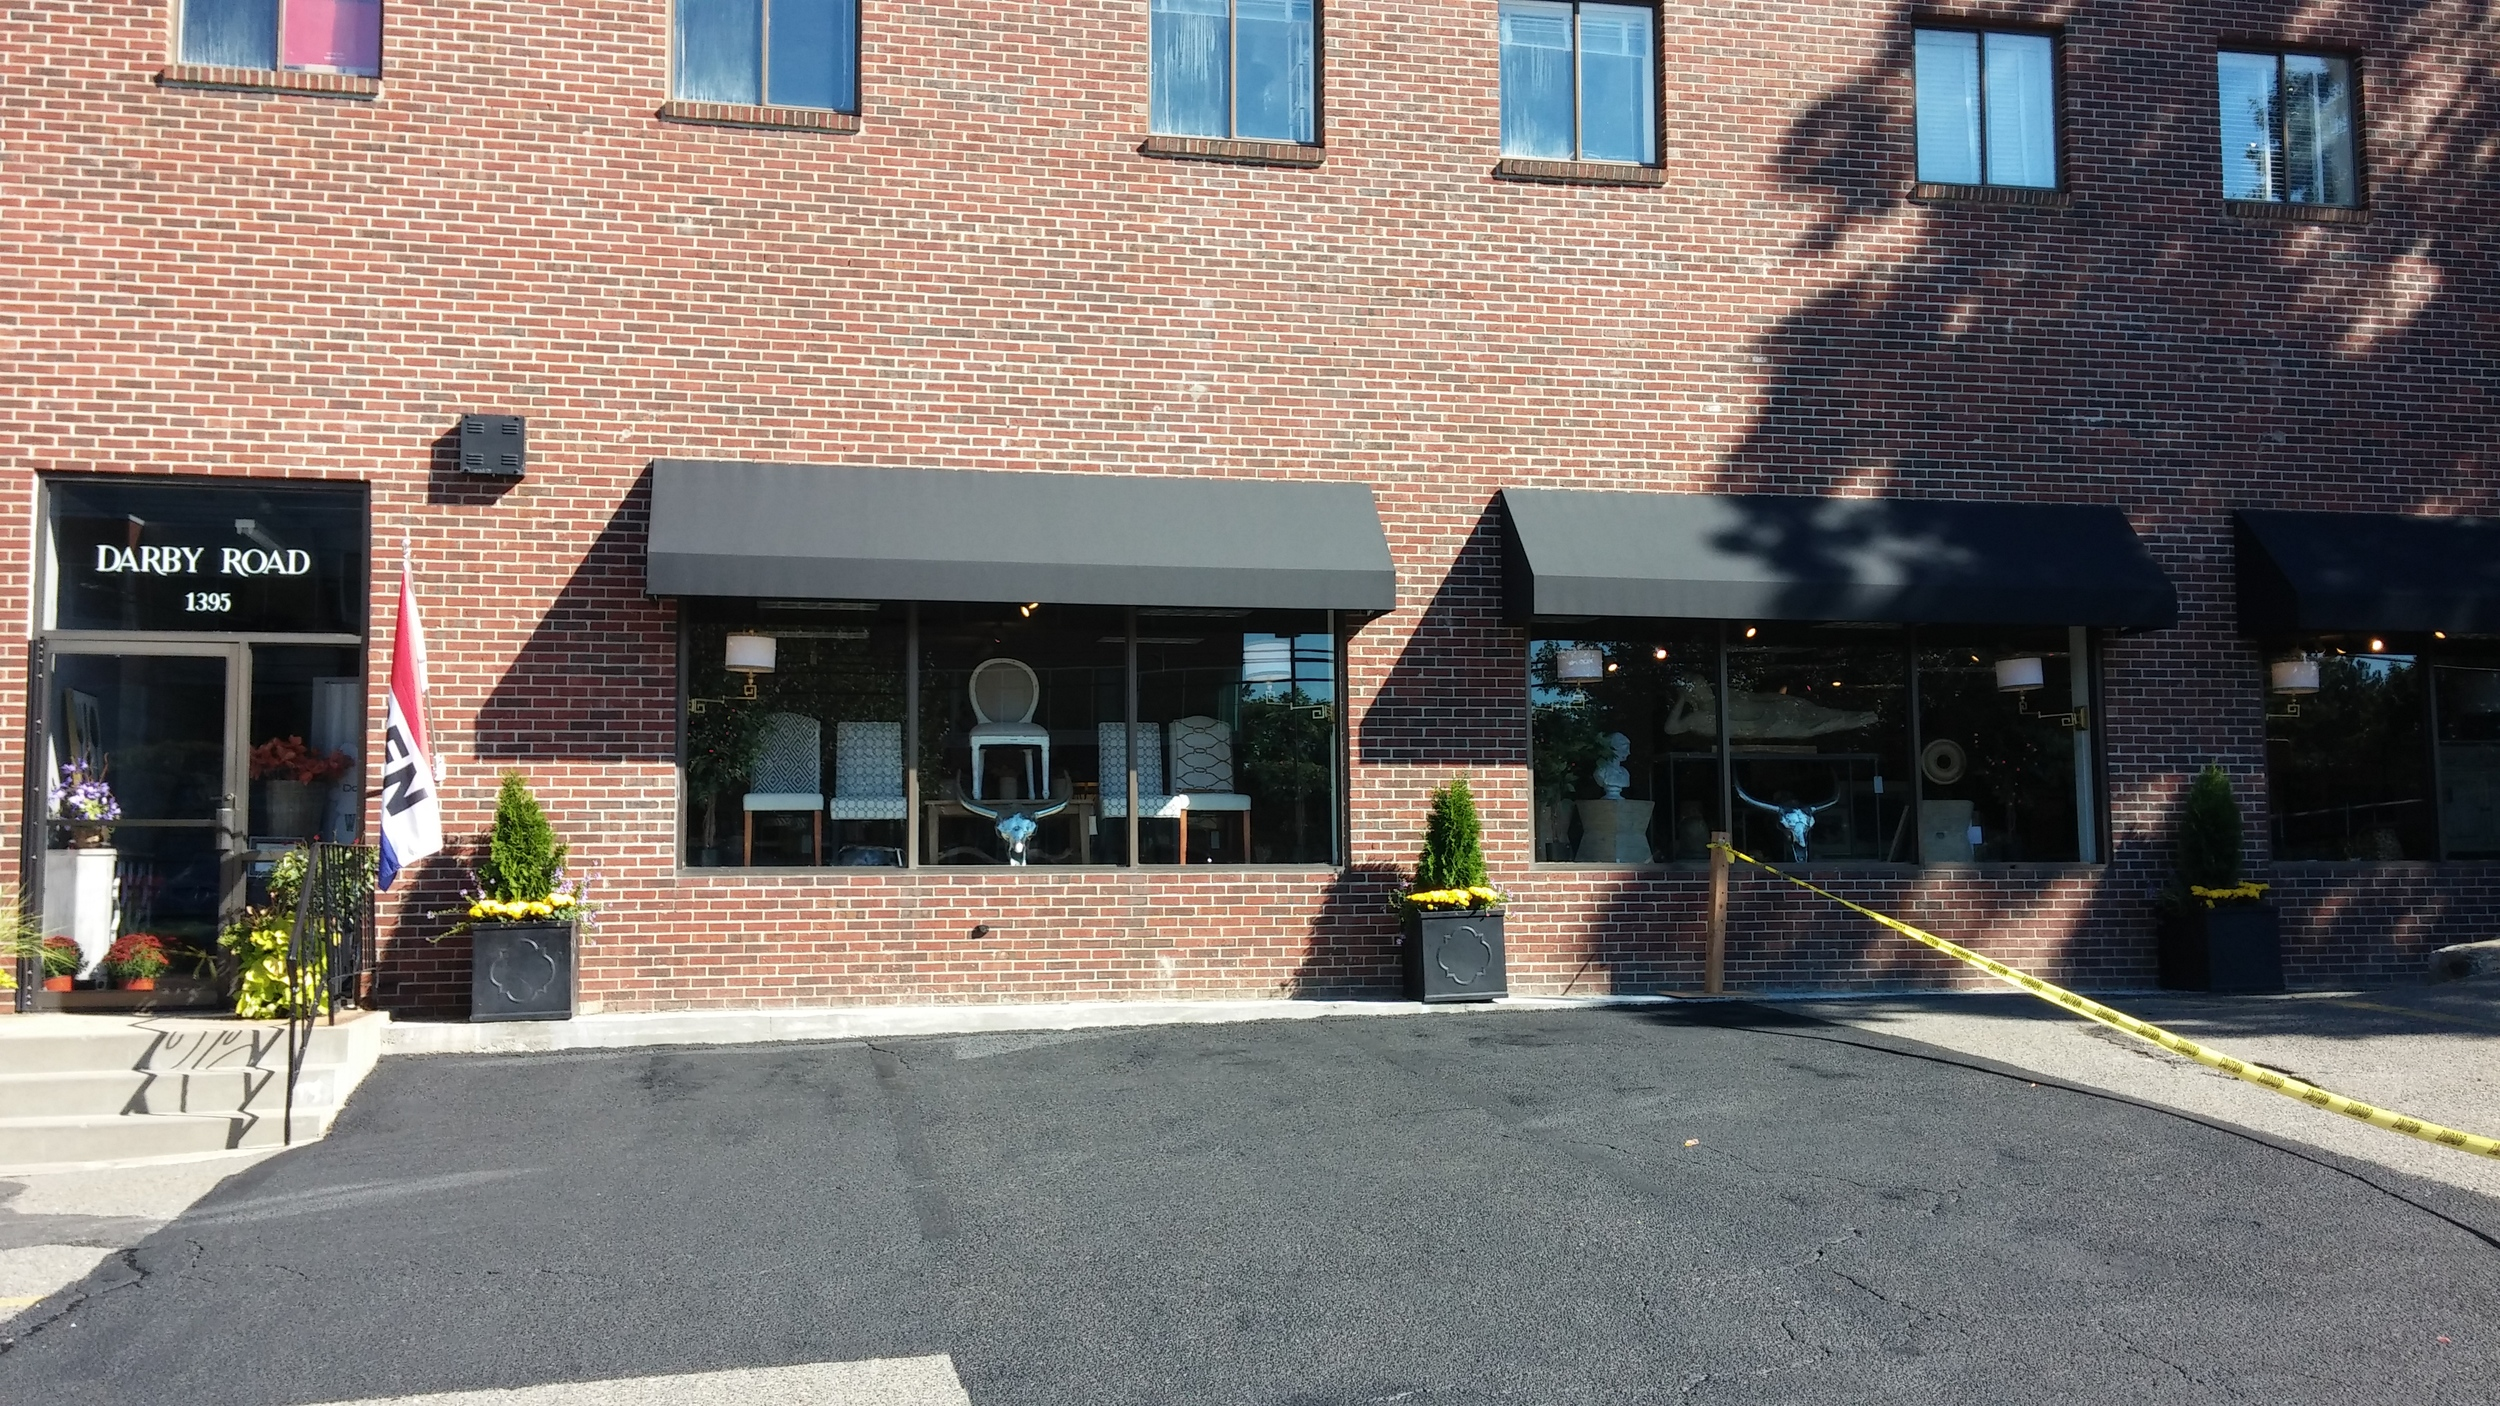 Installed window awnings